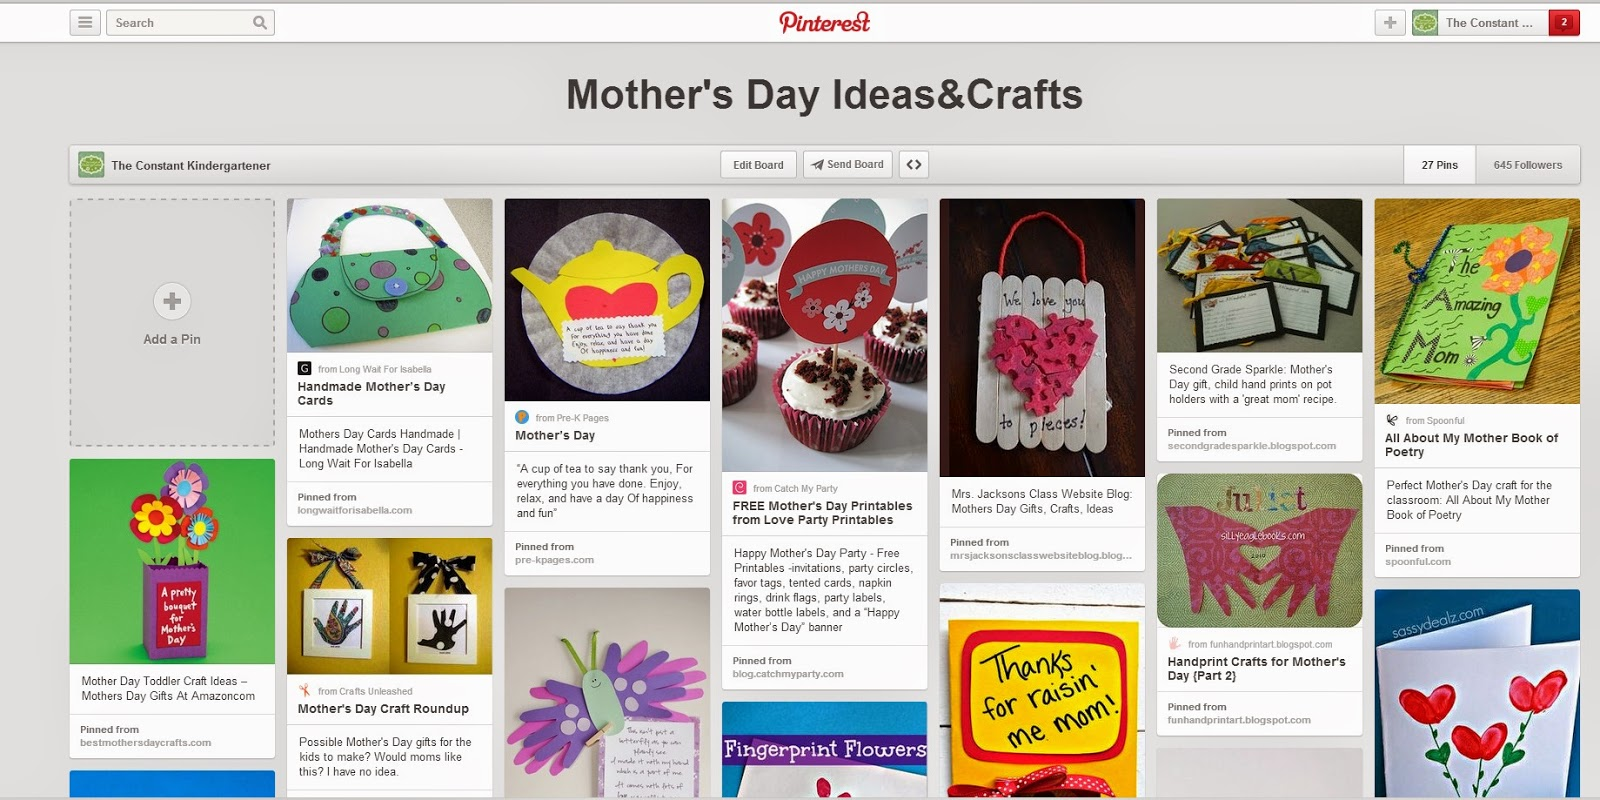 http://gr.pinterest.com/dinaland/mothers-day-ideascrafts/